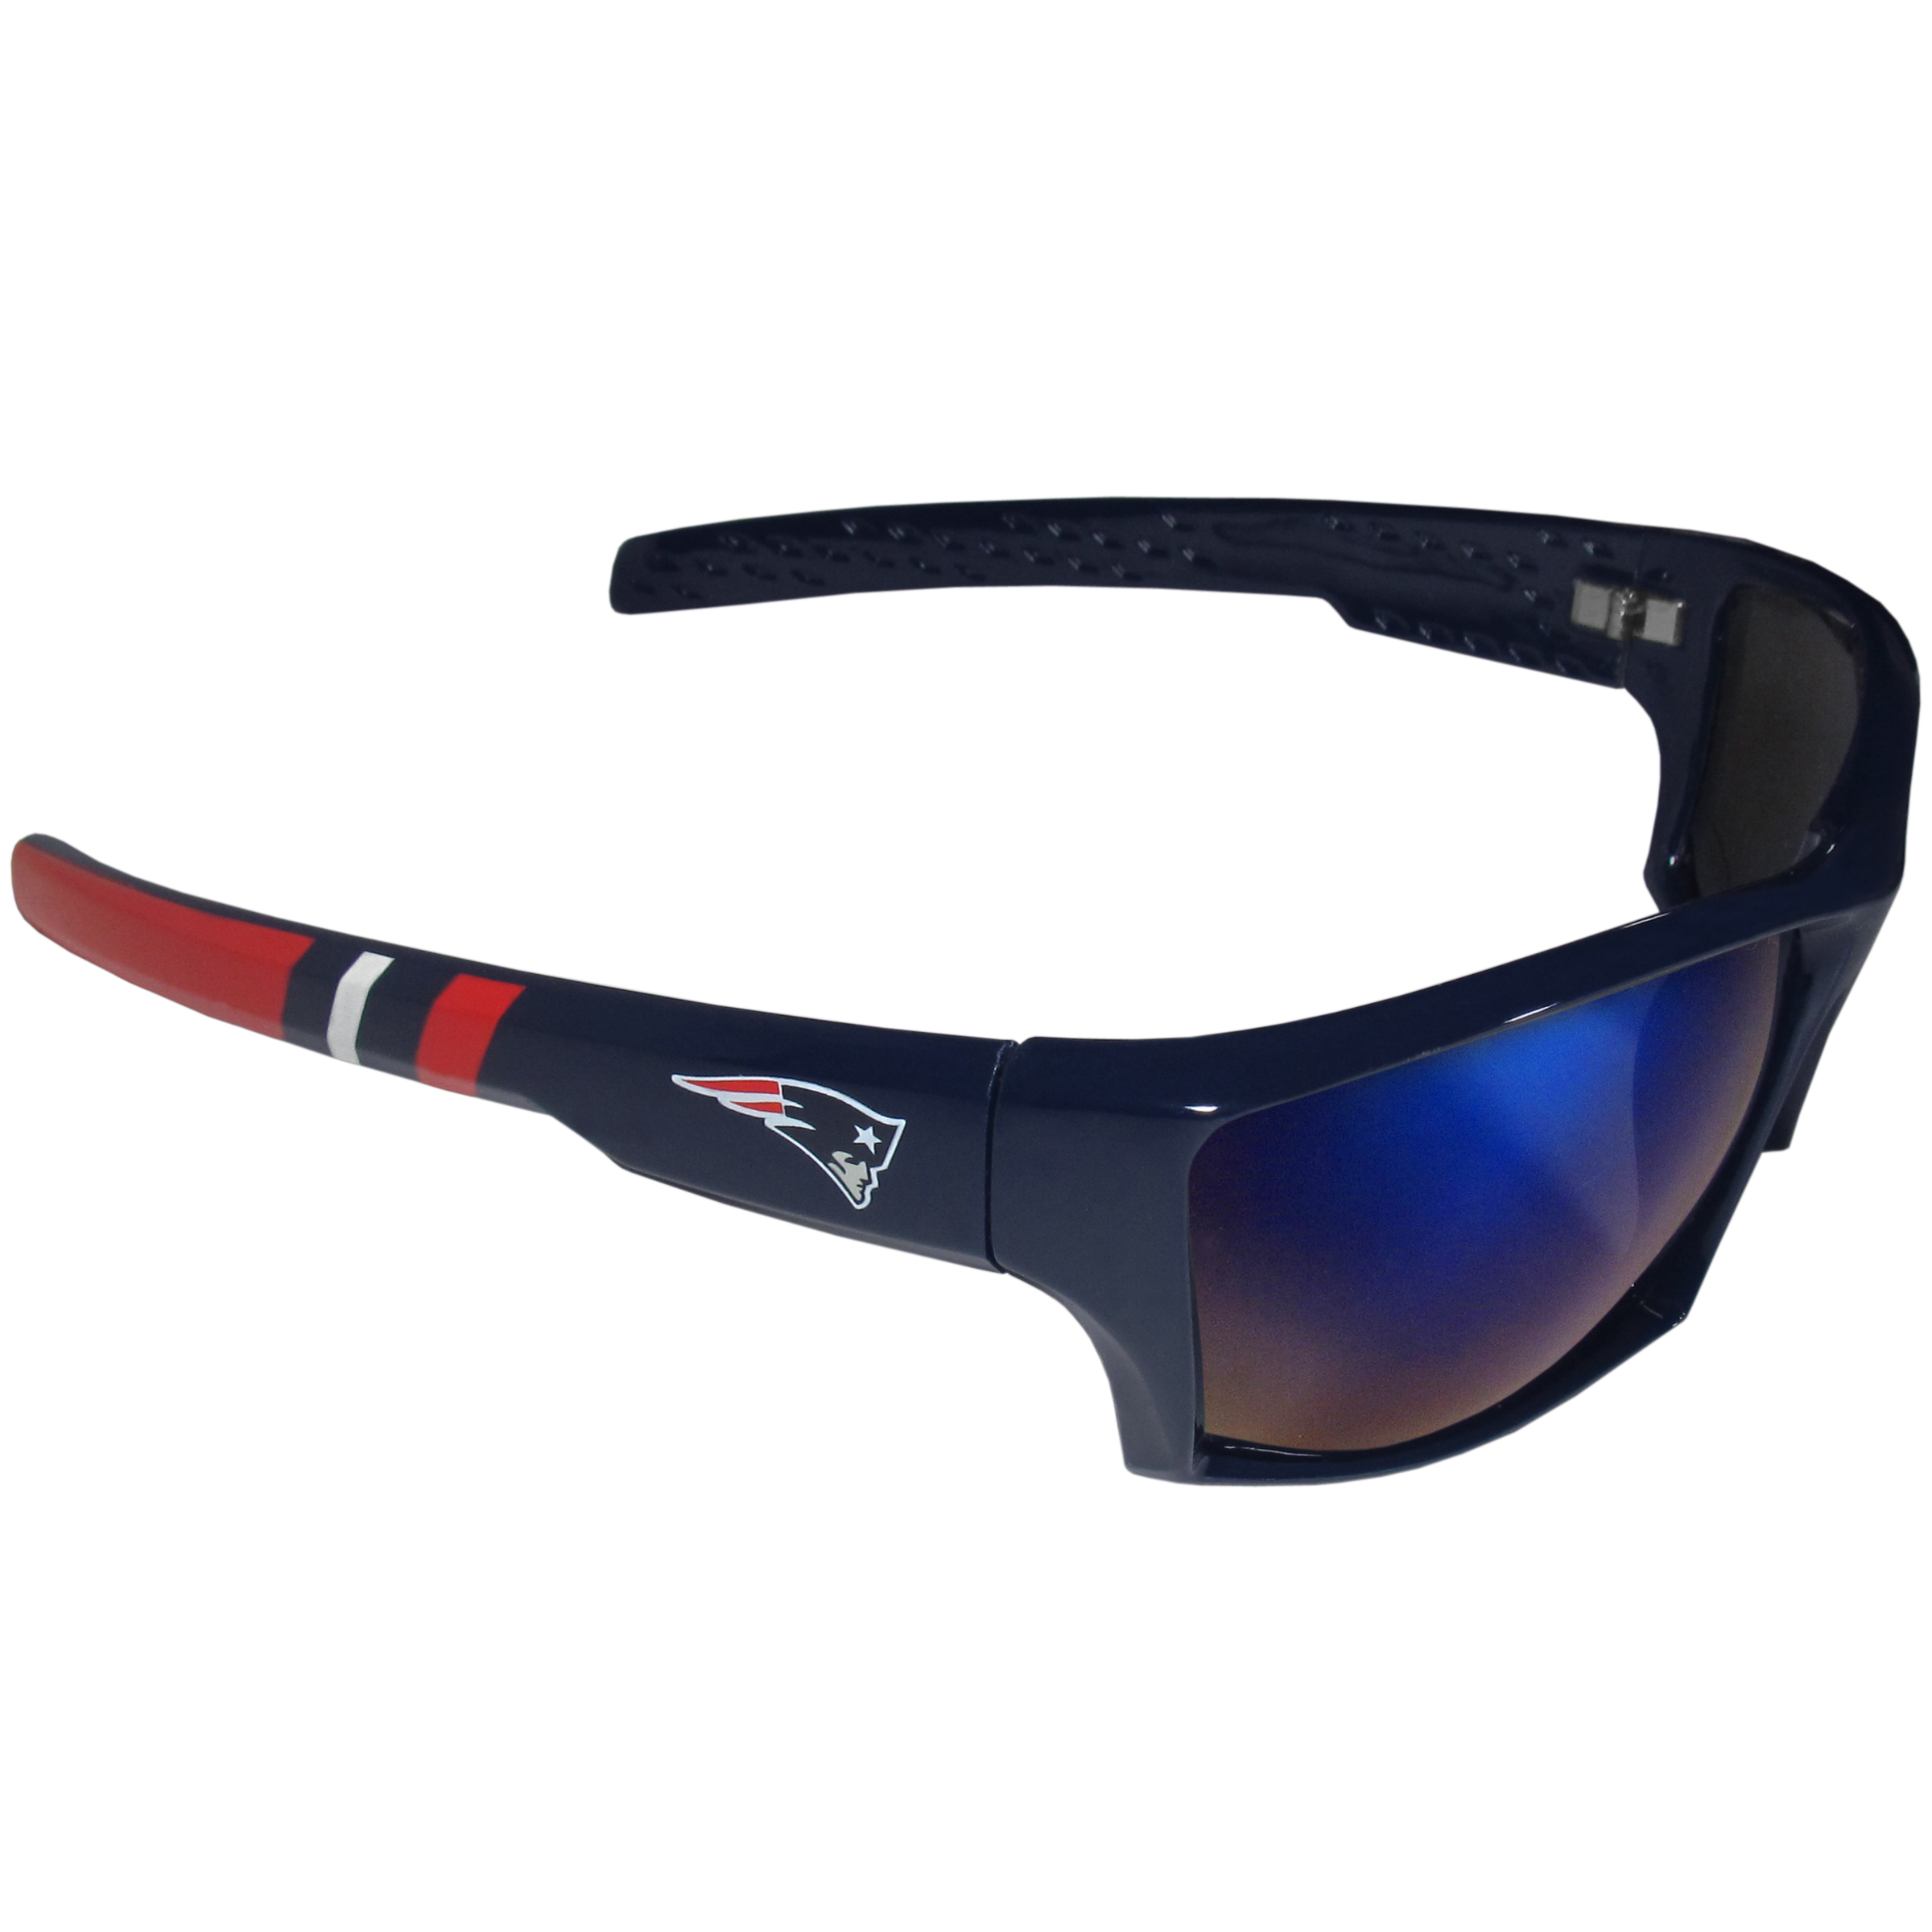 New England Patriots Edge Wrap Sunglasses - Be an icon of edgy style while you're in the stadium cheering your New England Patriots to victory with our polarized wrap sunglasses that feature 100% UVA/UVB rating for maximum UV protection. The light-weight frames are built to last with flex hinges for comfort and durability which make them perfect for driving or just lounging by the pool. The colorful rubber grips on the arms of these fashionable sunglasses make them perfect for someone with an active lifestyle. Whether you are hiking, fishing, boating, running on the beach, golfing or playing your favorite sport these designer frames will set you apart. Our edge wrap sunglasses are true quality eyewear at an affordable price. The wrap style frames come with team colored stripes and team logos so you can show off your die-hard team pride while protecting your eyes from those bright sun rays.